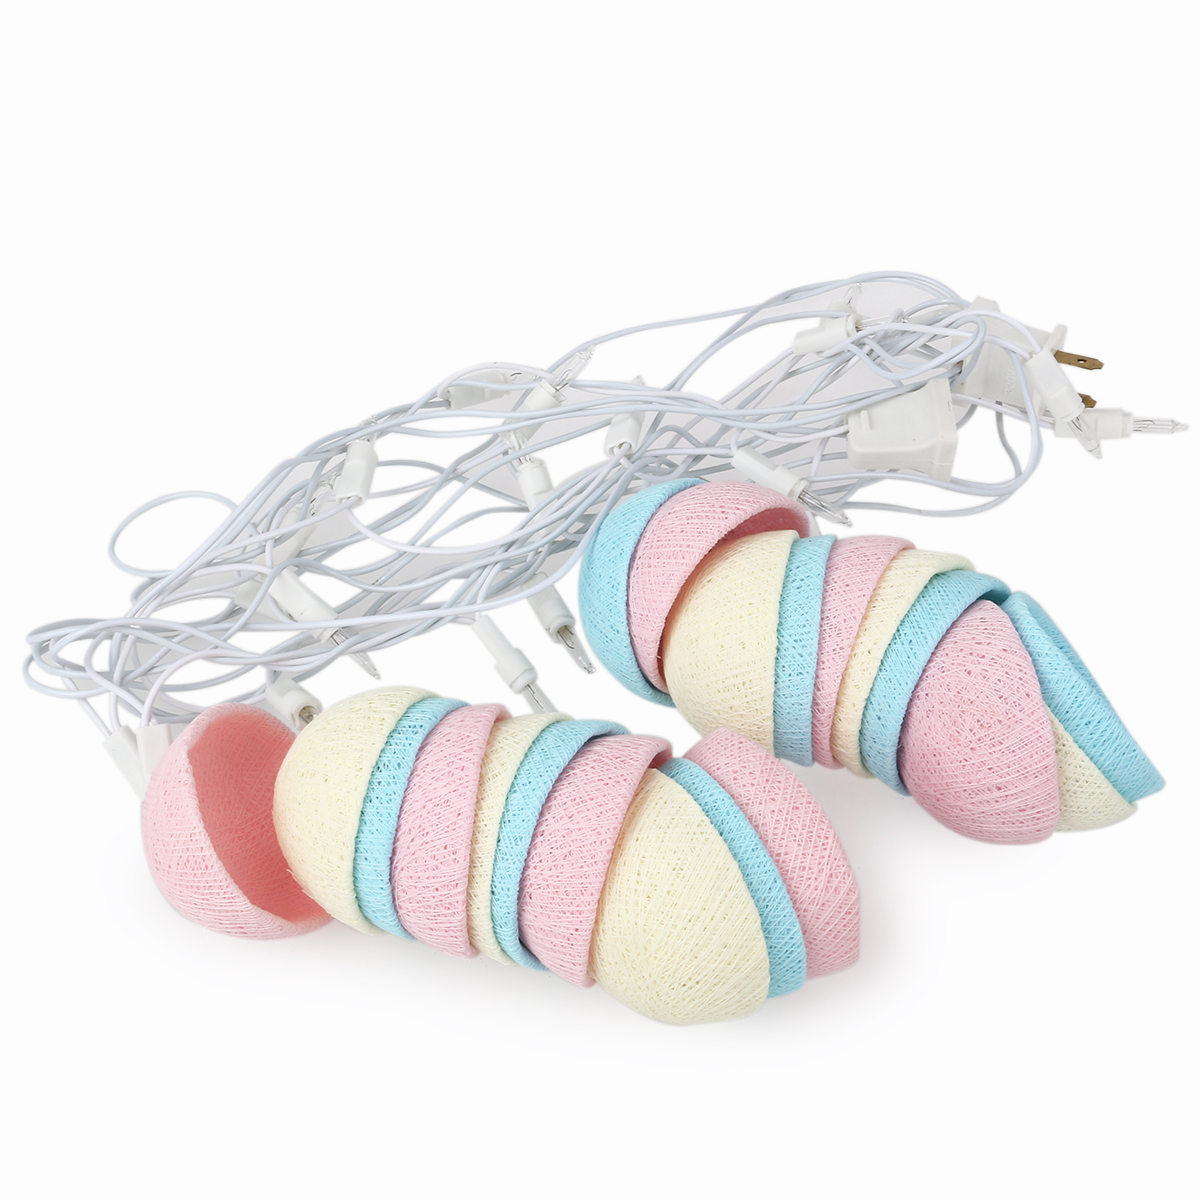 New Arrival Cotton Ball 20-LED String Lights Led Holiday Lamp for Wedding Garden Party Christmas Decoration (Pink+Blue+White)(China (Mainland))